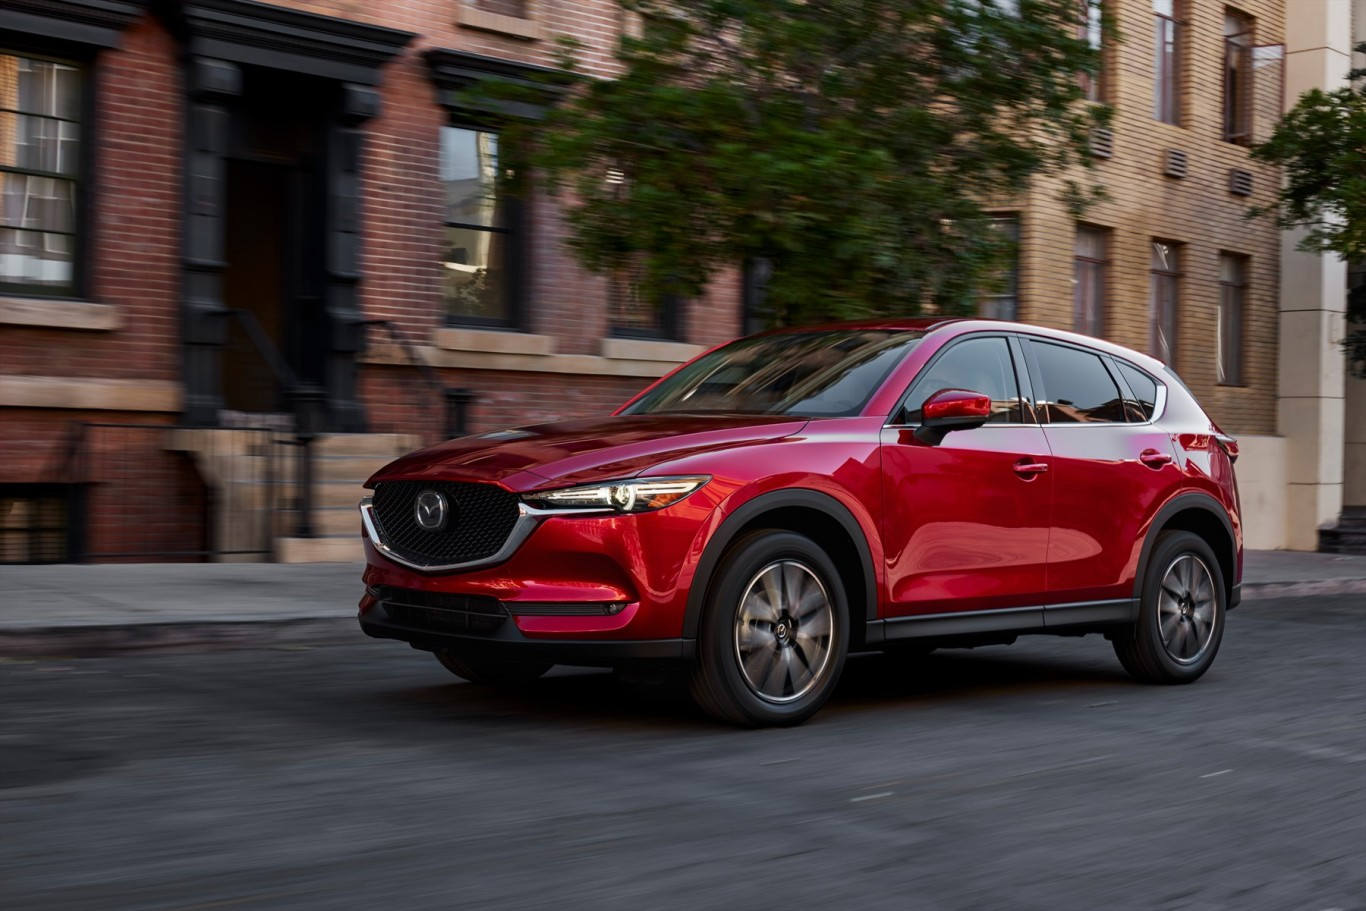 Mazda's all-new CX-5 debuts in South Africa